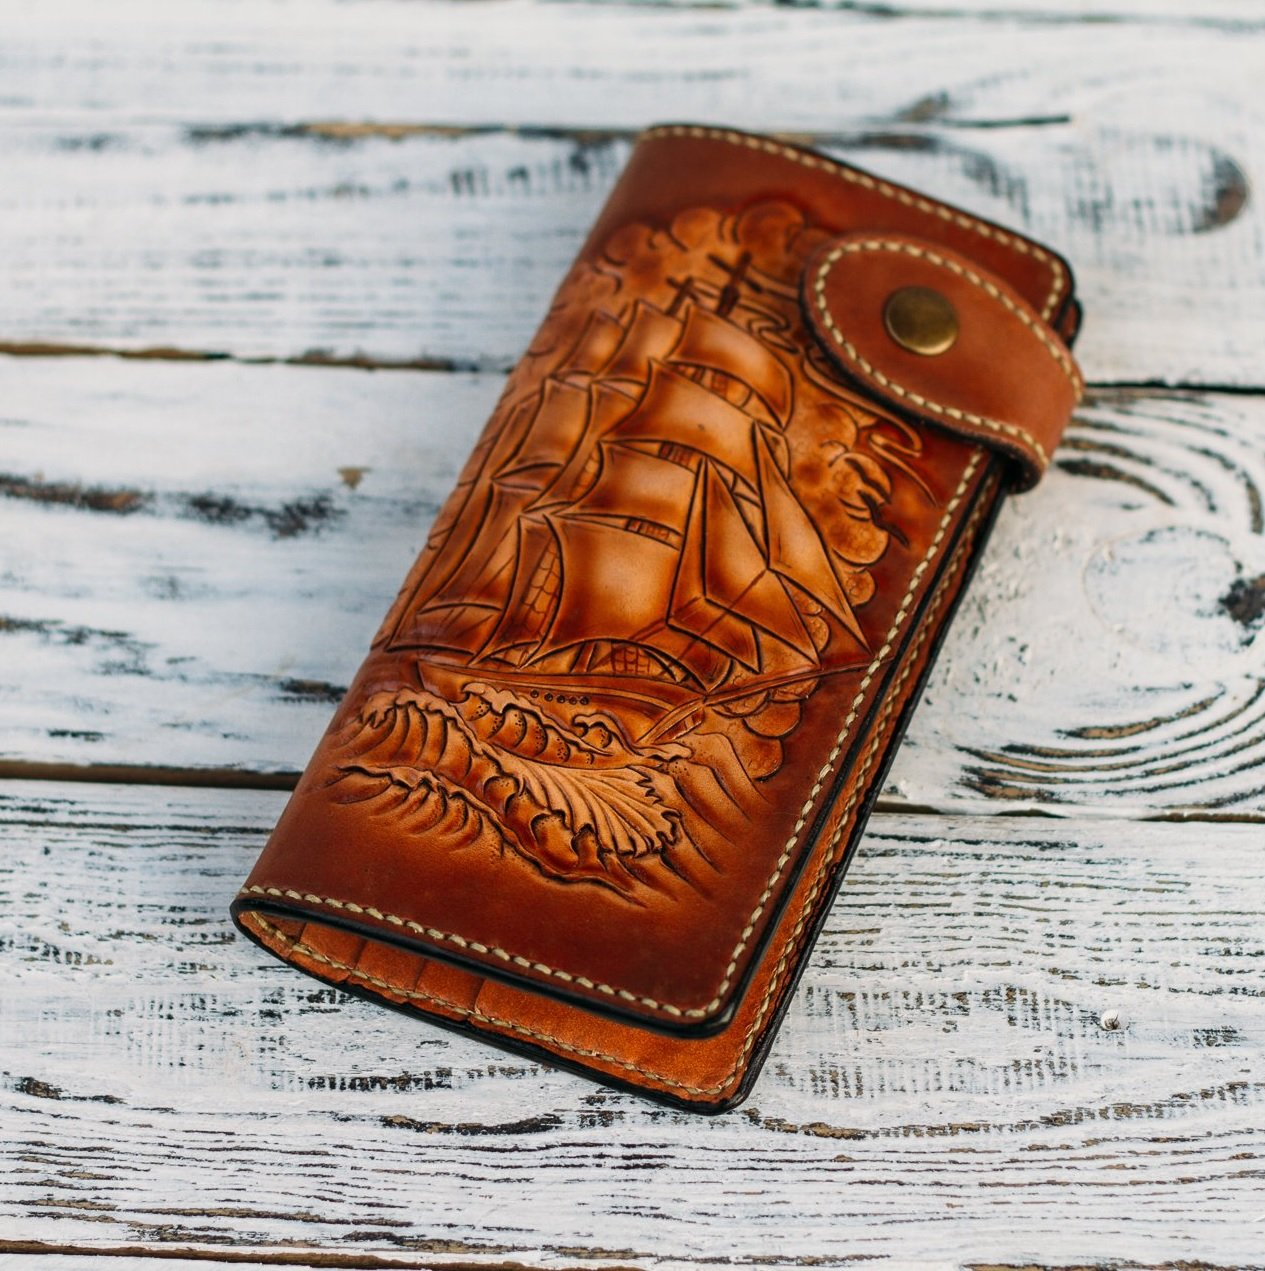 Men's 3D Genuine Leather Wallet, Long Travel wallet, Biker wallet, Hand-Carved, Hand-Painted, Leather Carving, Custom wallet, Personalized wallet, Boat, Ship